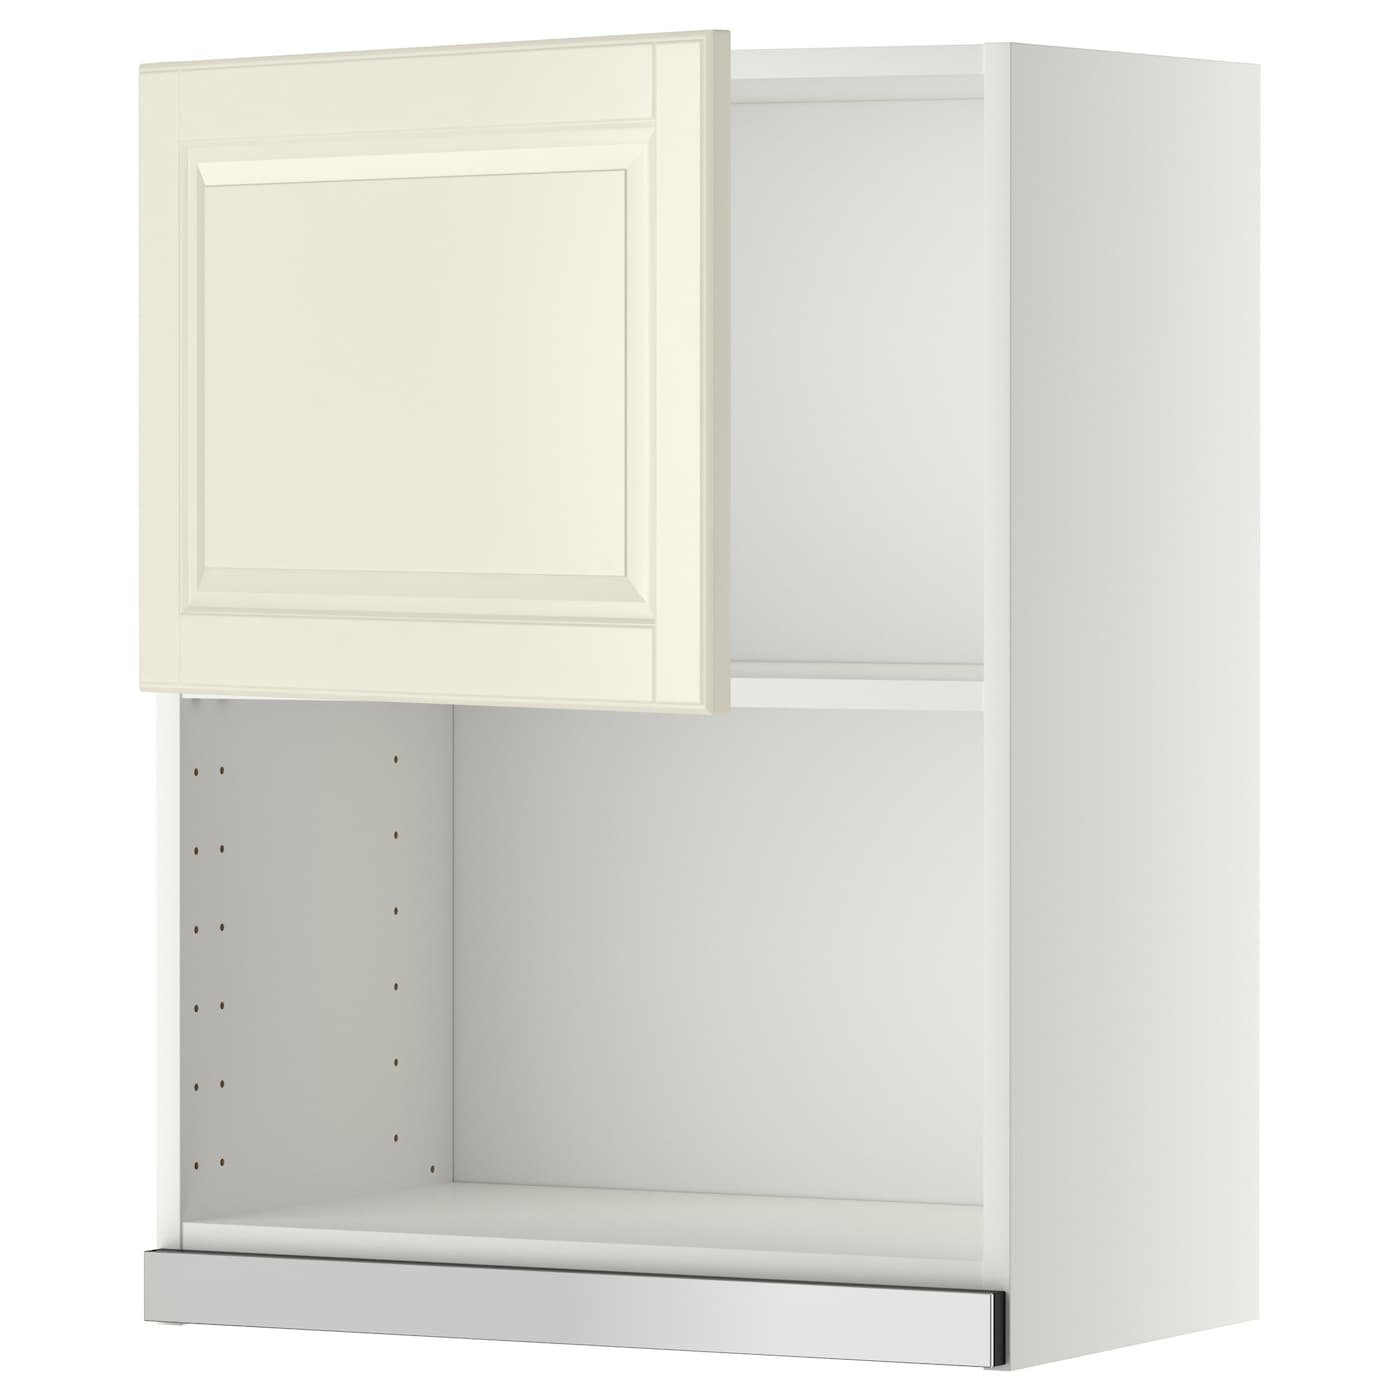 metod wall cabinet for microwave oven white bodbyn off white 60x80 cm ikea. Black Bedroom Furniture Sets. Home Design Ideas